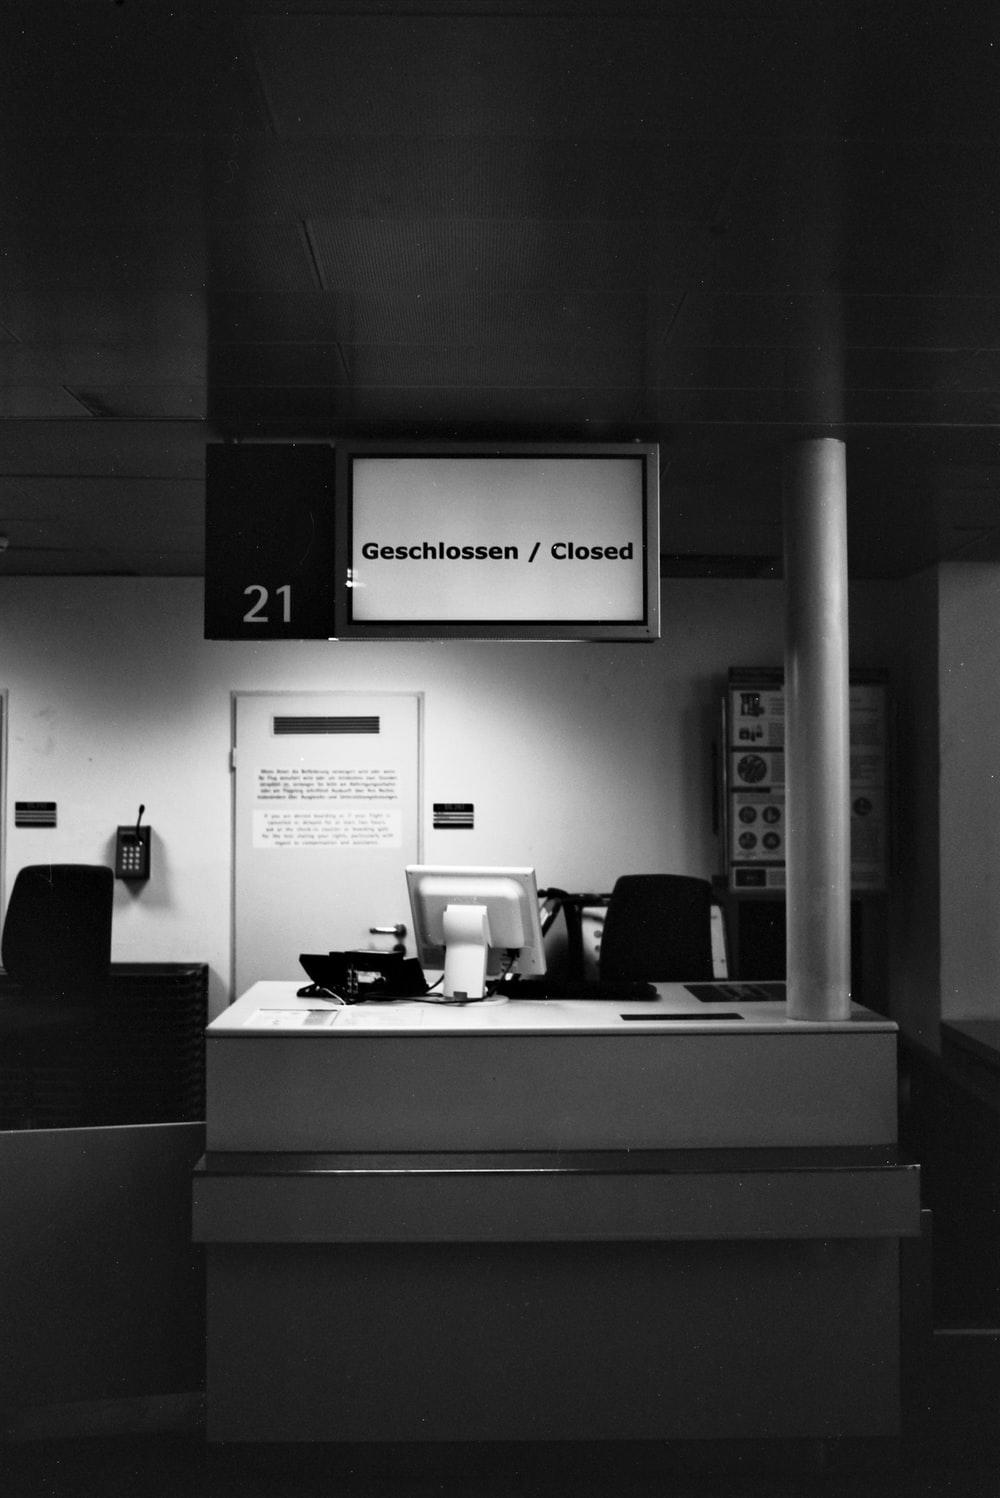 grayscale photo of office room